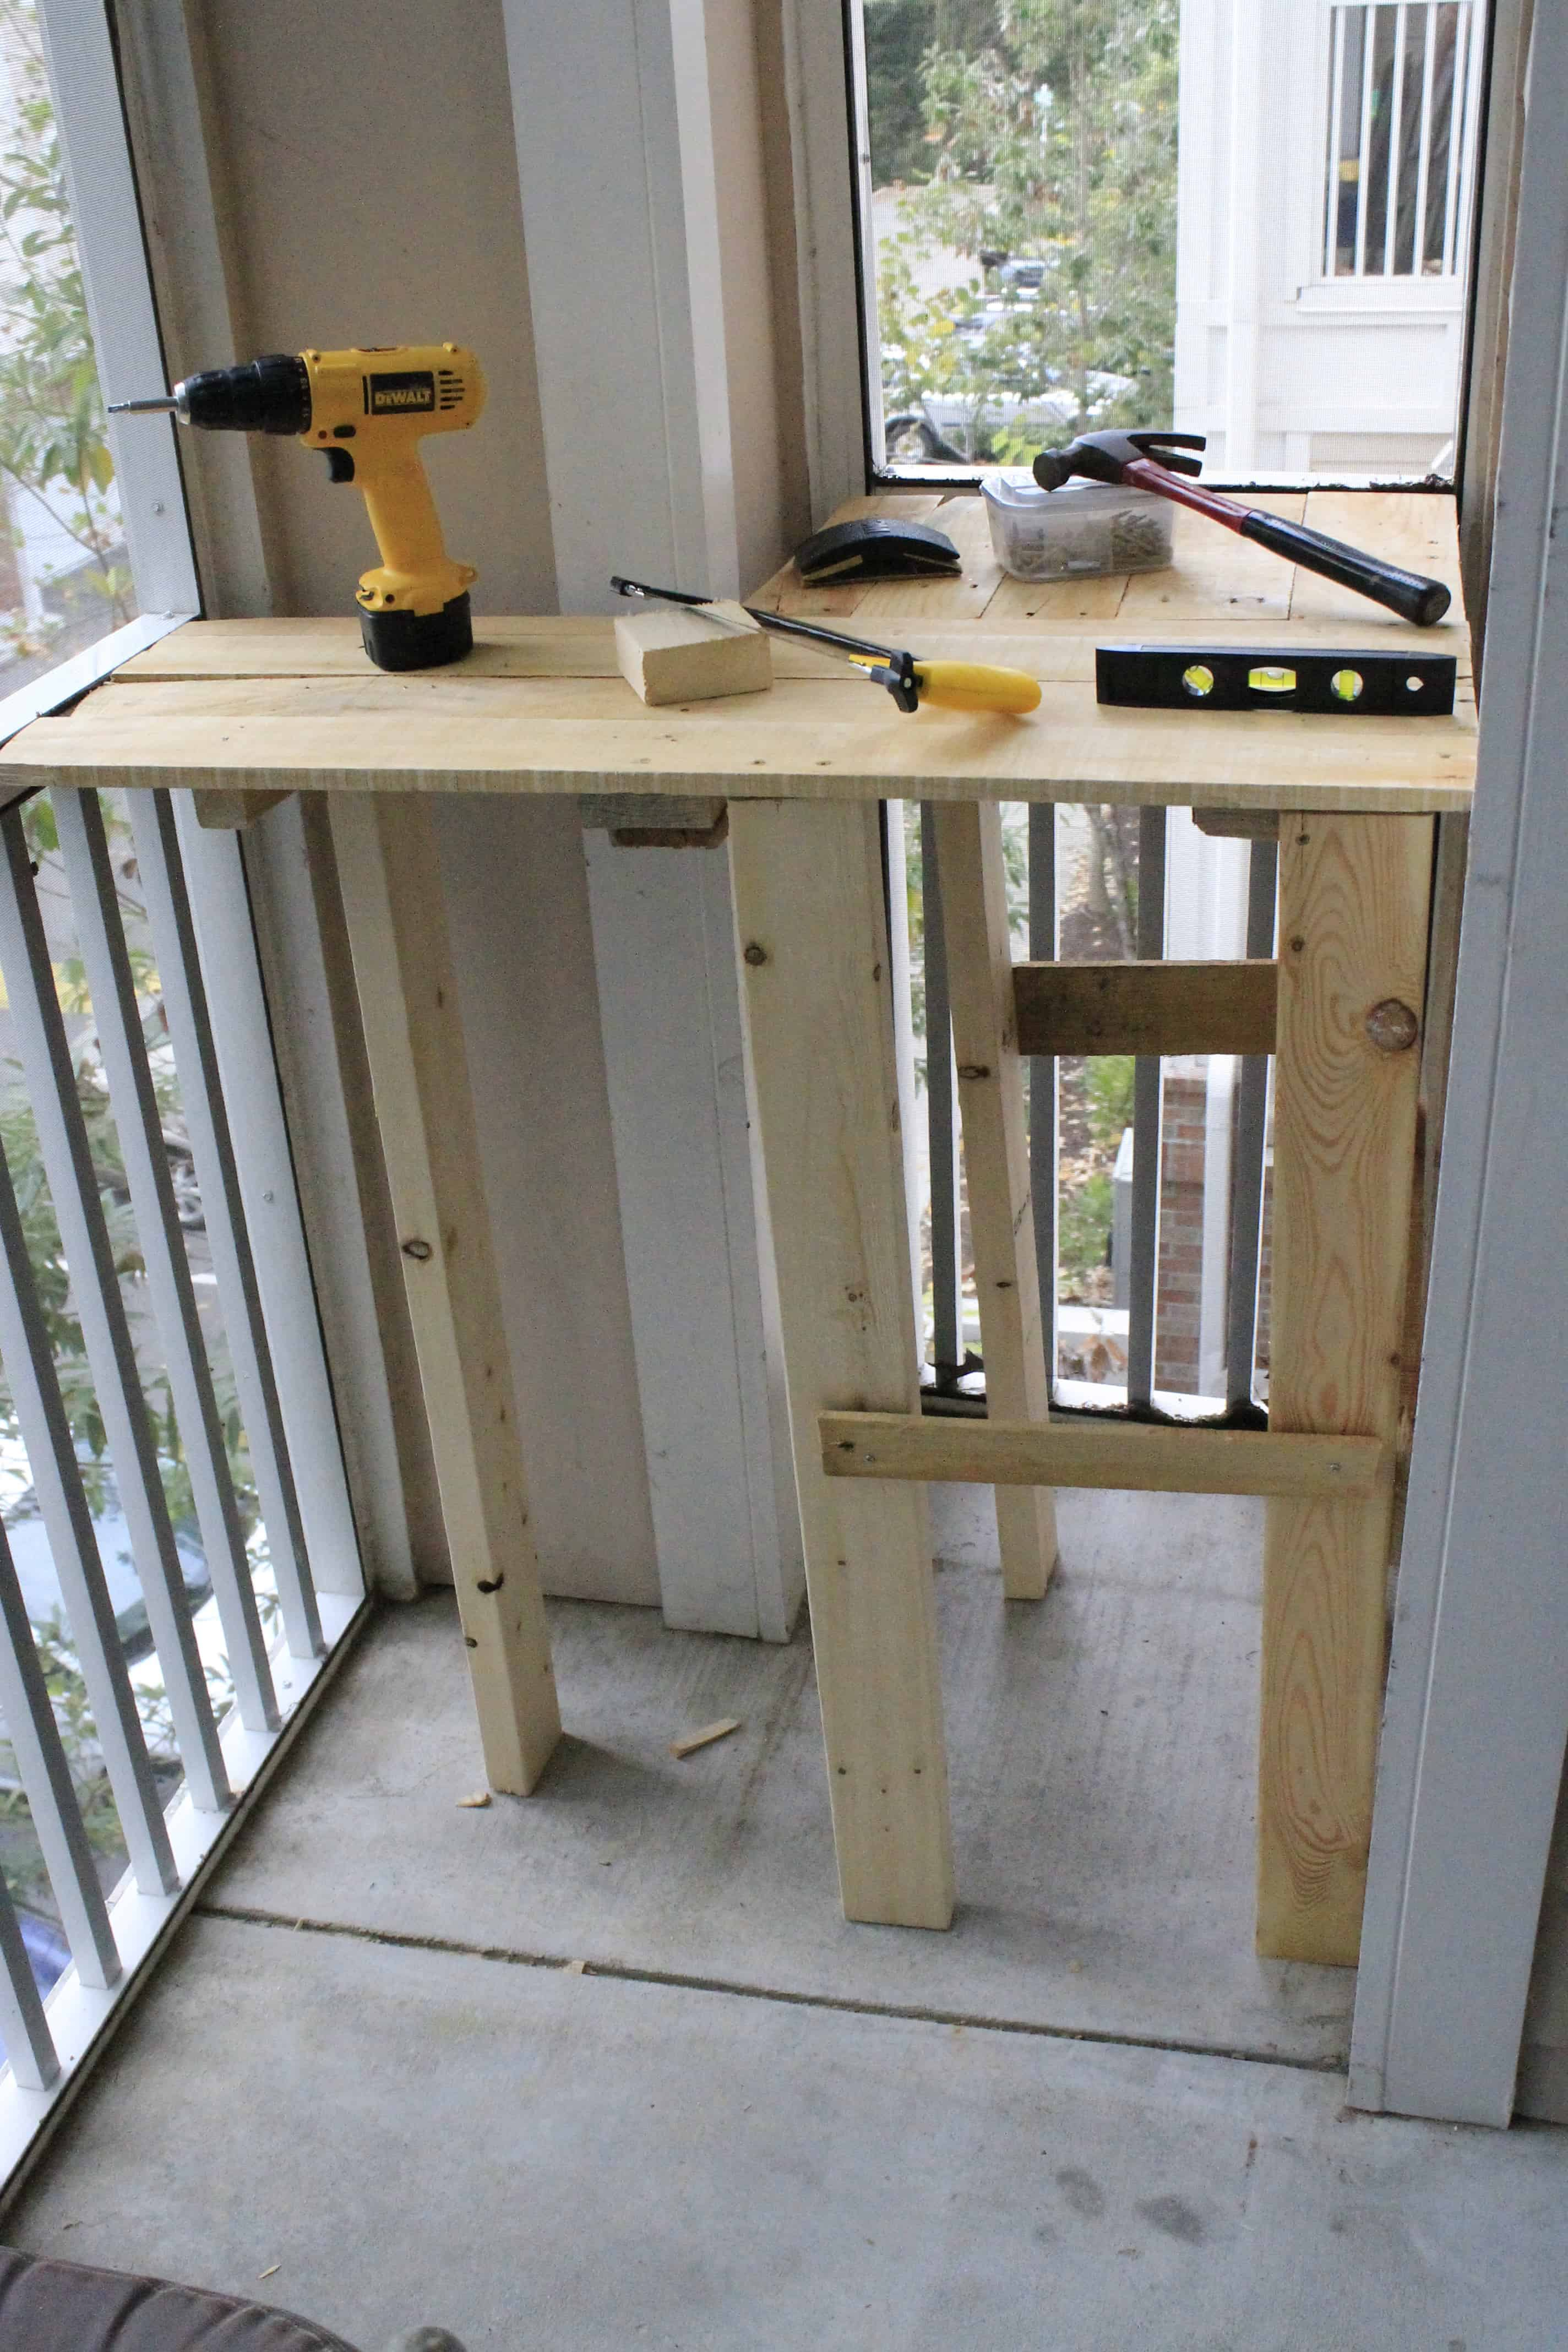 101 in 1001: Build a Work Station for Porch